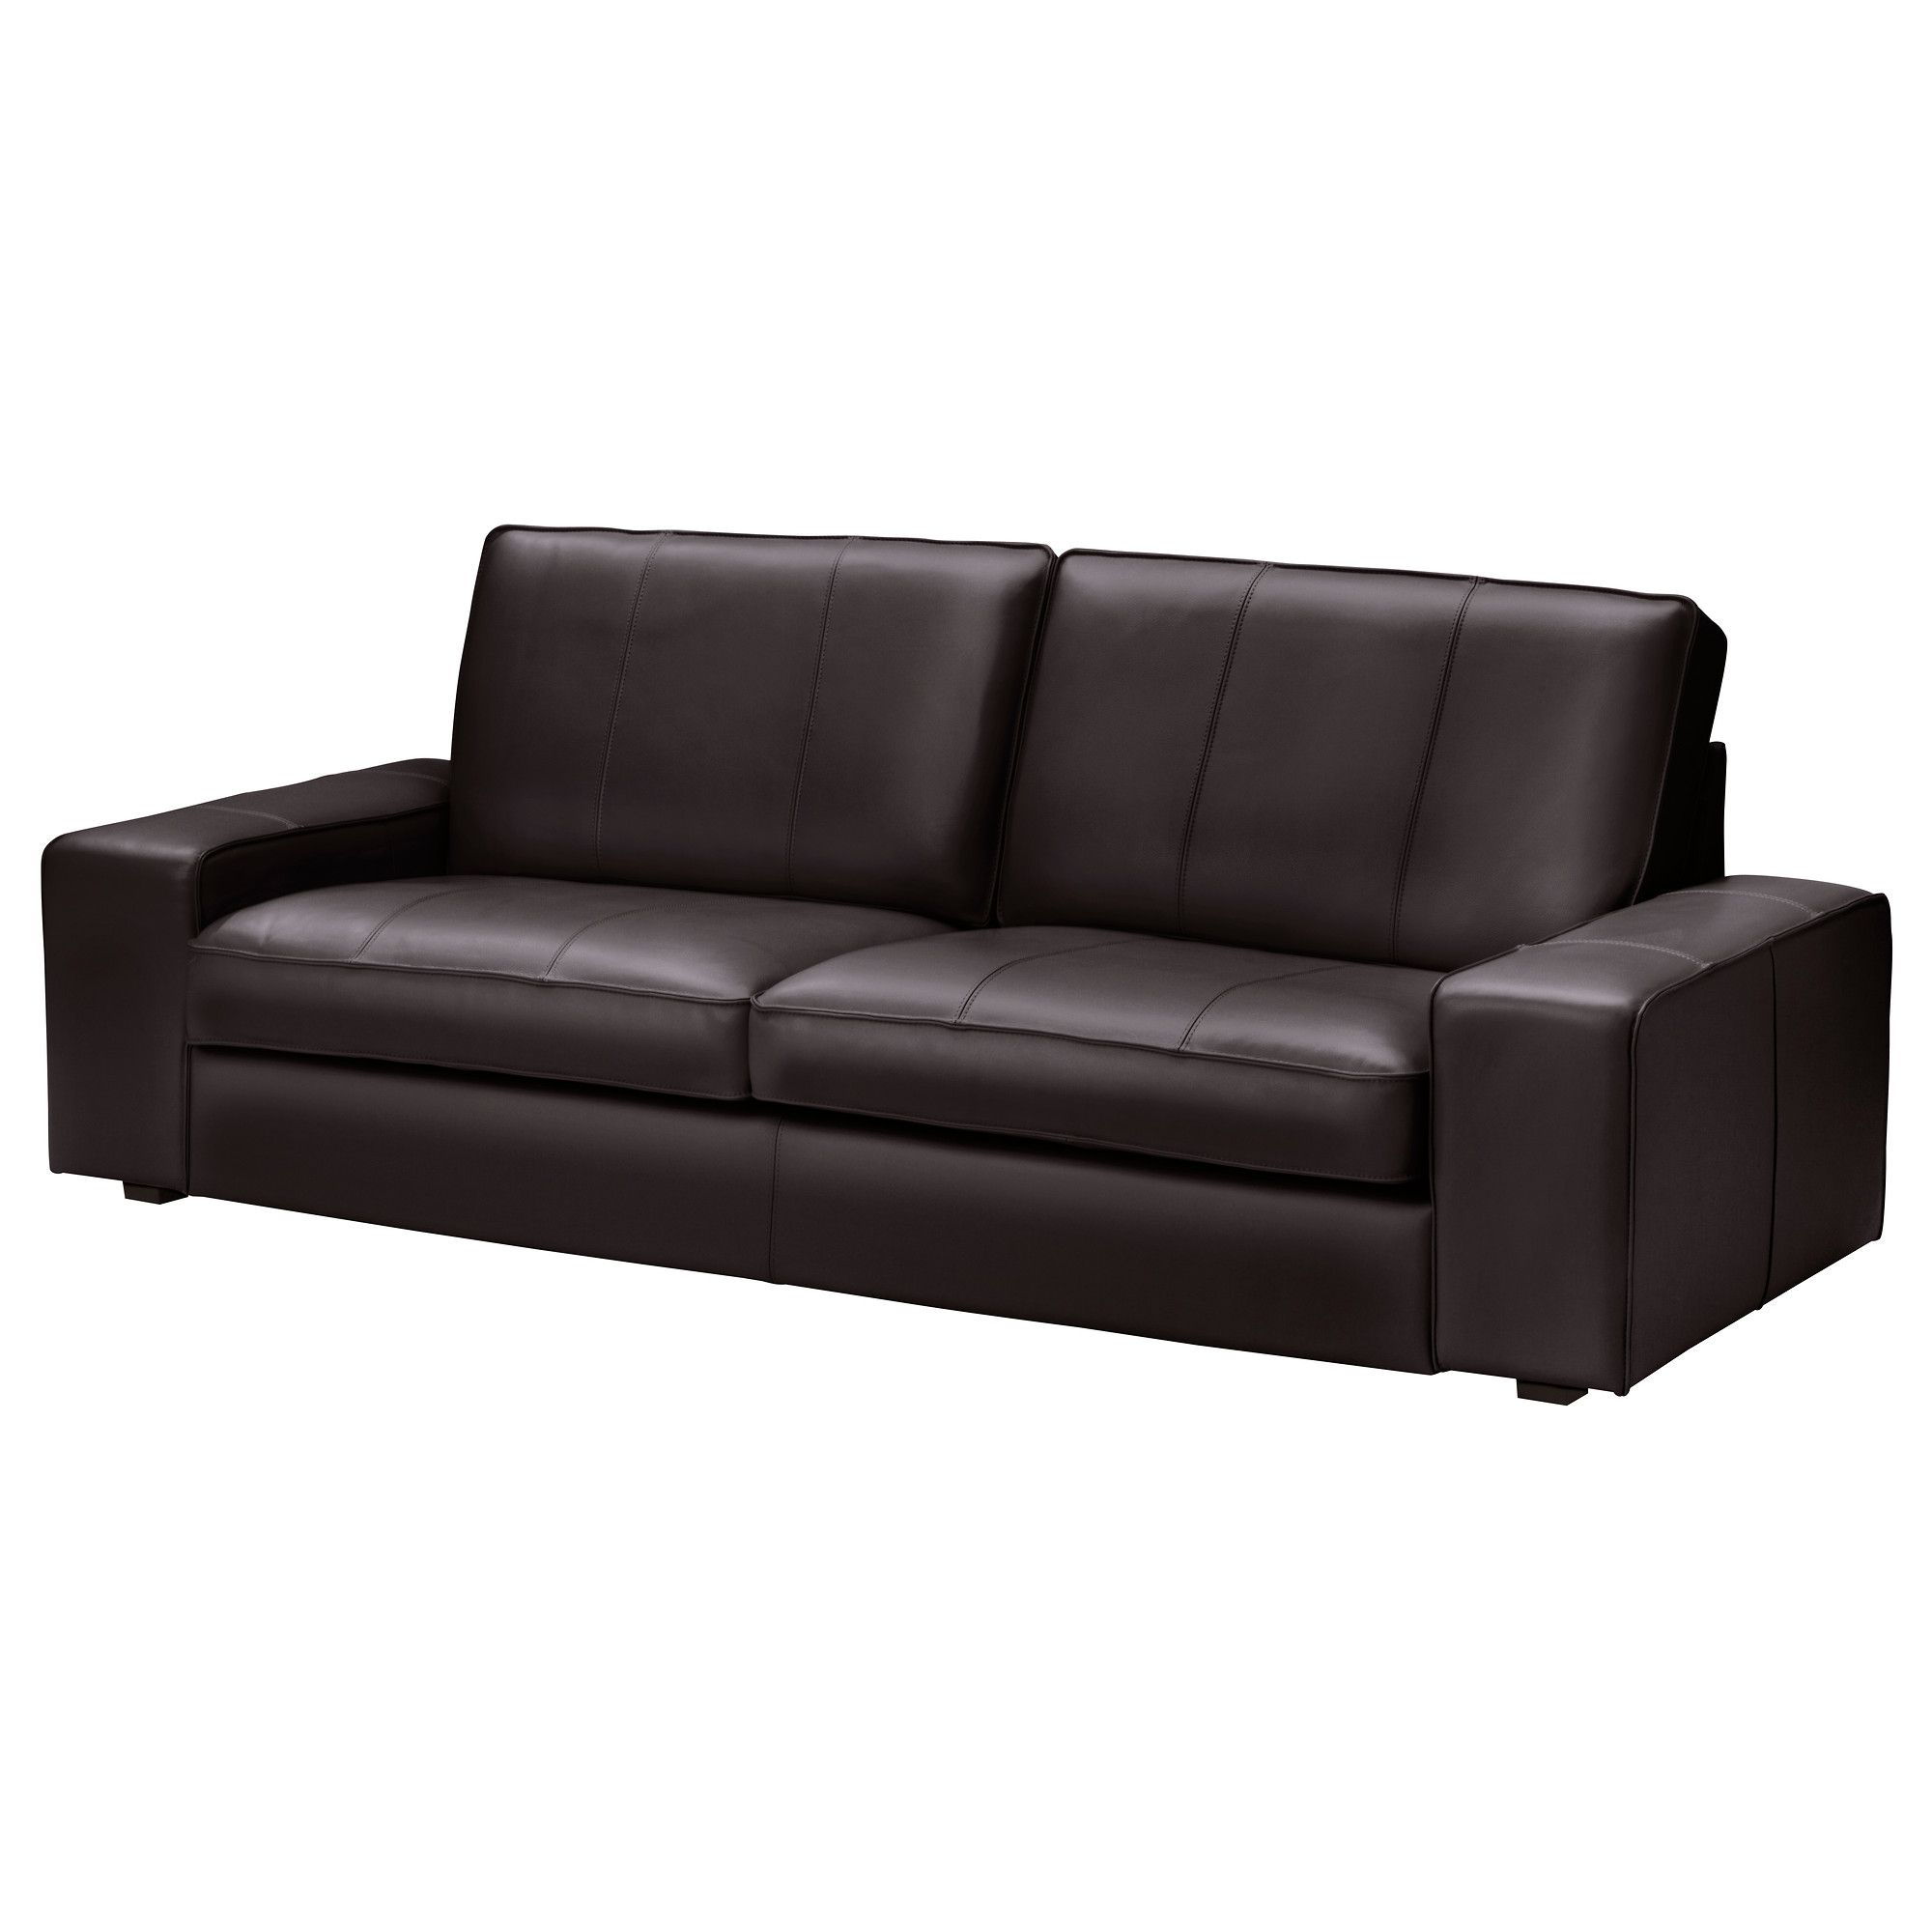 Us Furniture And Home Furnishings With Images Kivik Sofa Faux Leather Sofa Ikea Leather Sofa